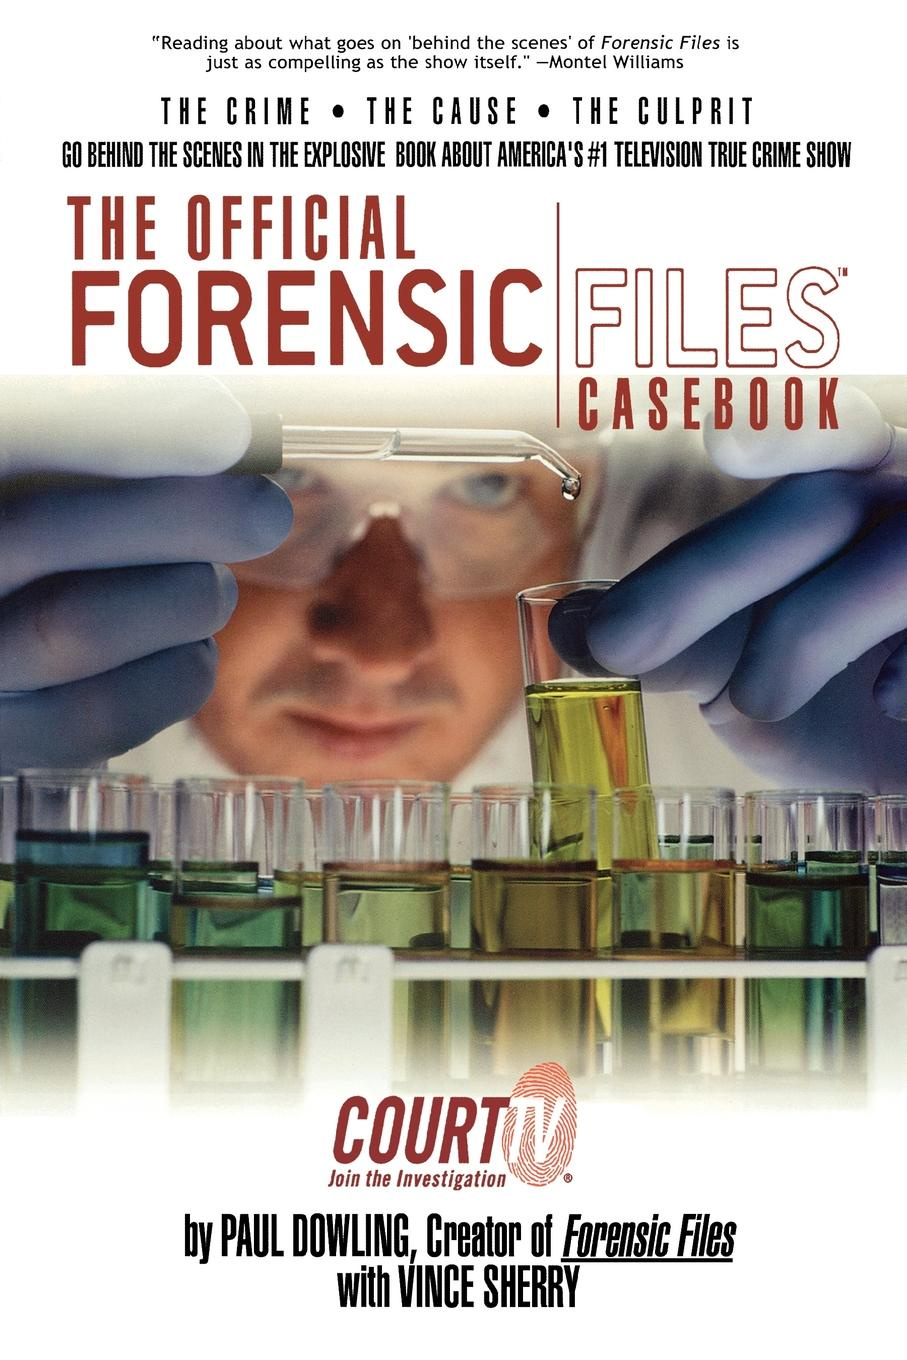 Paul Dowling, Vince Sherry The Official Forensic Files Casebook